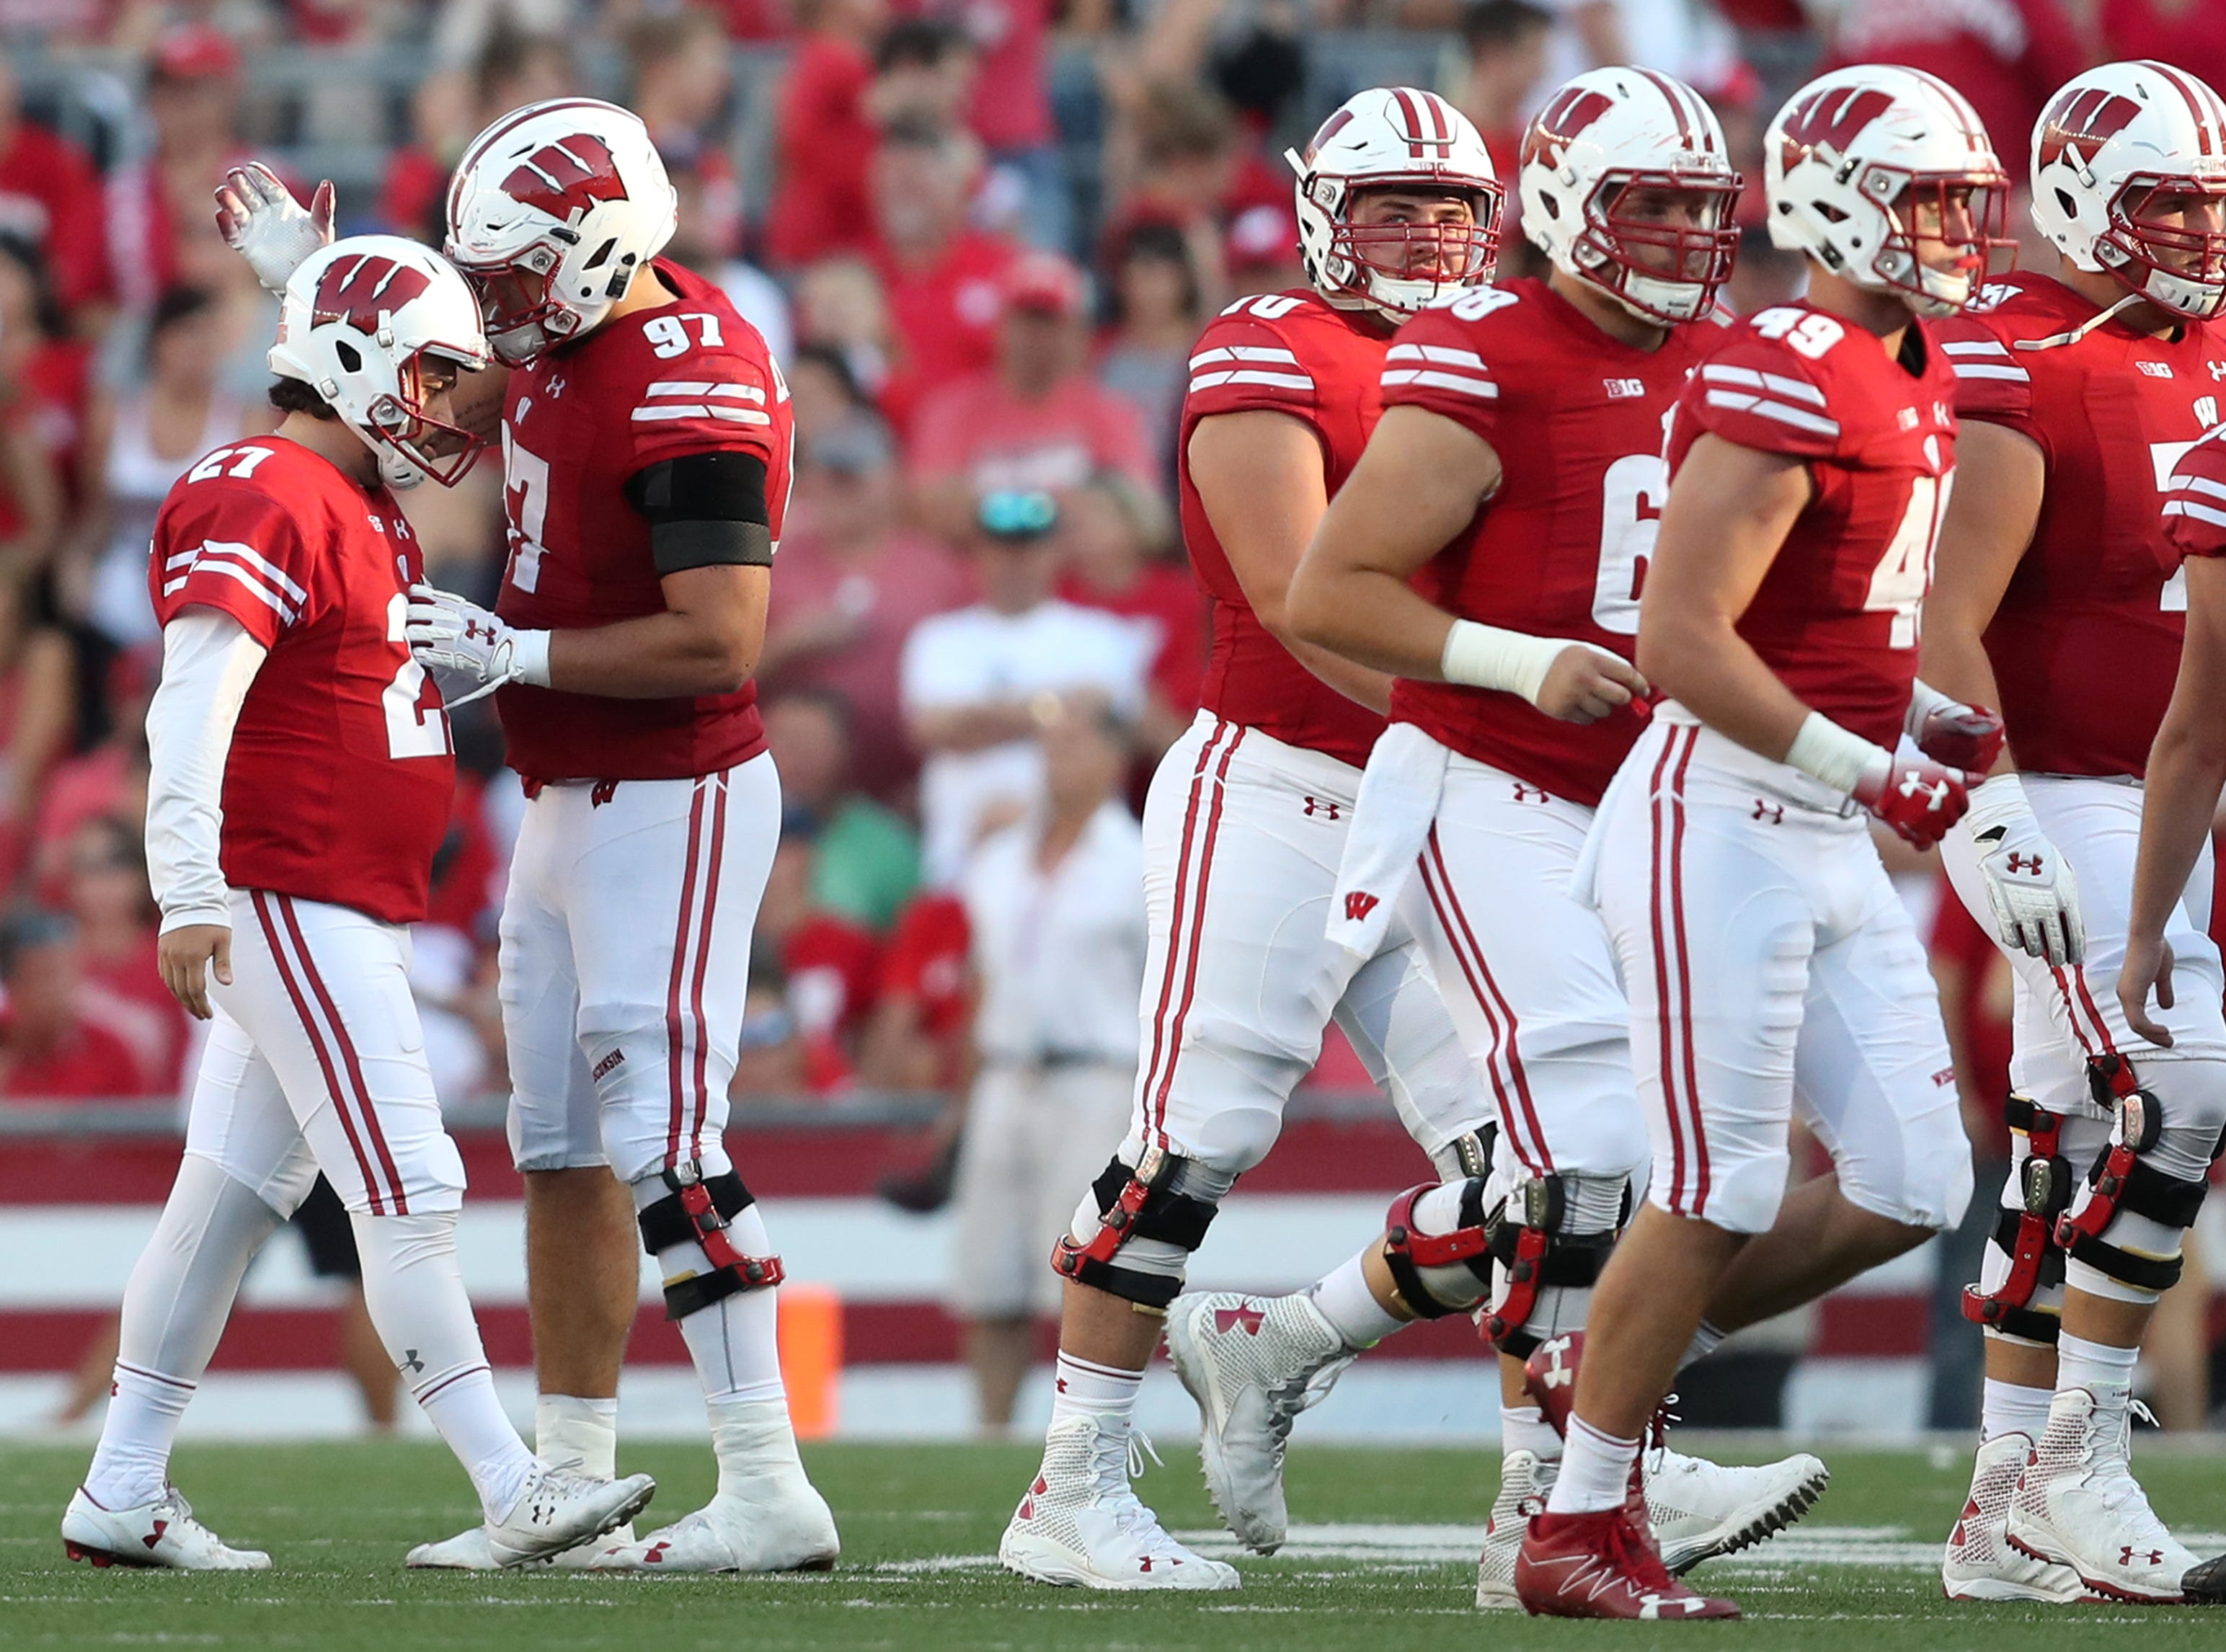 Wisconsin Badgers place kicker Rafael Gaglianone (27) is comforted by Wisconsin Badgers defensive end Isaiahh Loudermilk (97) after Gaglianone missed a 42-yard field goal attempt that would have tied their game against the Brigham Young Cougars Saturday, Sept. 15, 2018, at Camp Randall Stadium in Madison, Wis. The Wisconsin Badgers lost to the Brigham Young Cougars 24-21.Danny Damiani/USA TODAY NETWORK-Wisconsin